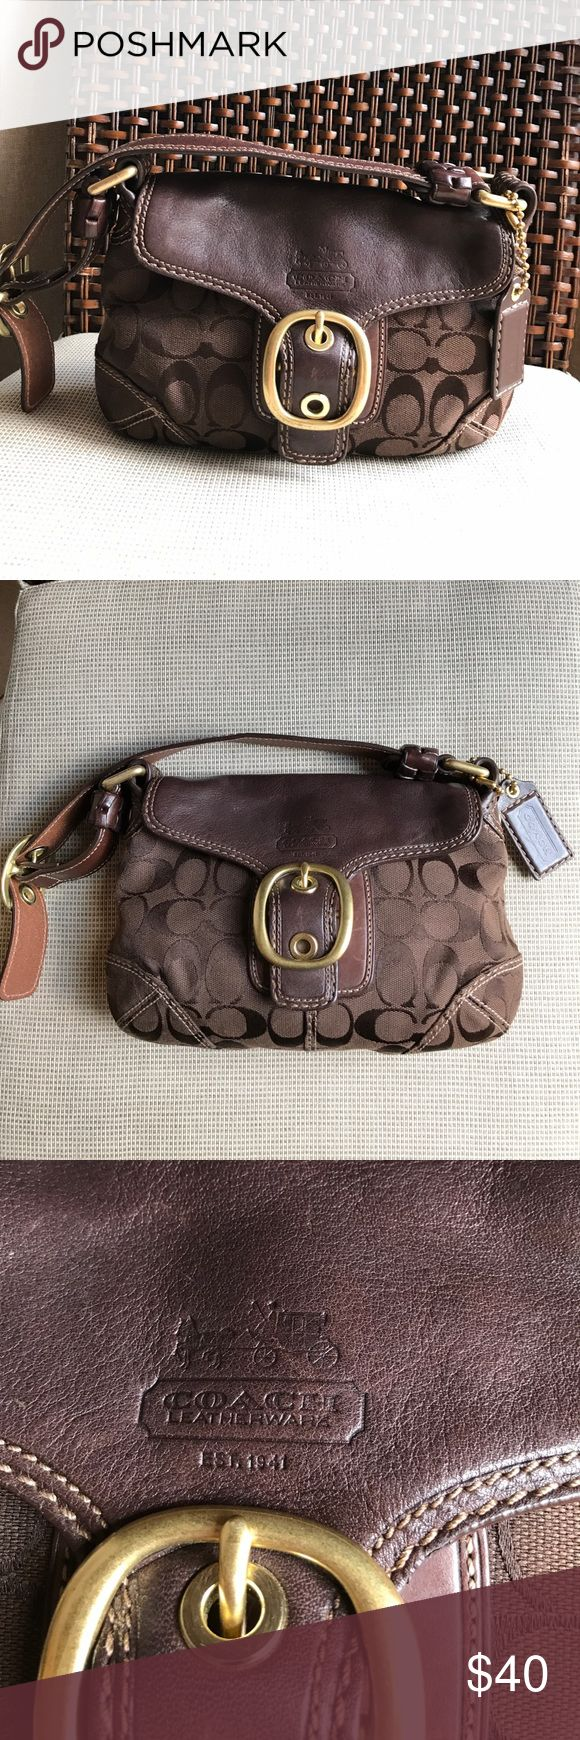 ‼️NEW LISTING‼️COACH Signature Canvas Shoulder Bag Canvas Shoulder Bag in Signature Jacquard. Great handbag with adjustable, long leather strap and gold hardware. Very clean inside with one zipper pocket and 2 additional side pockets. Has additional exterior pocket on back of bag too. Great for work, weekends or on the go! Coach Bags Shoulder Bags